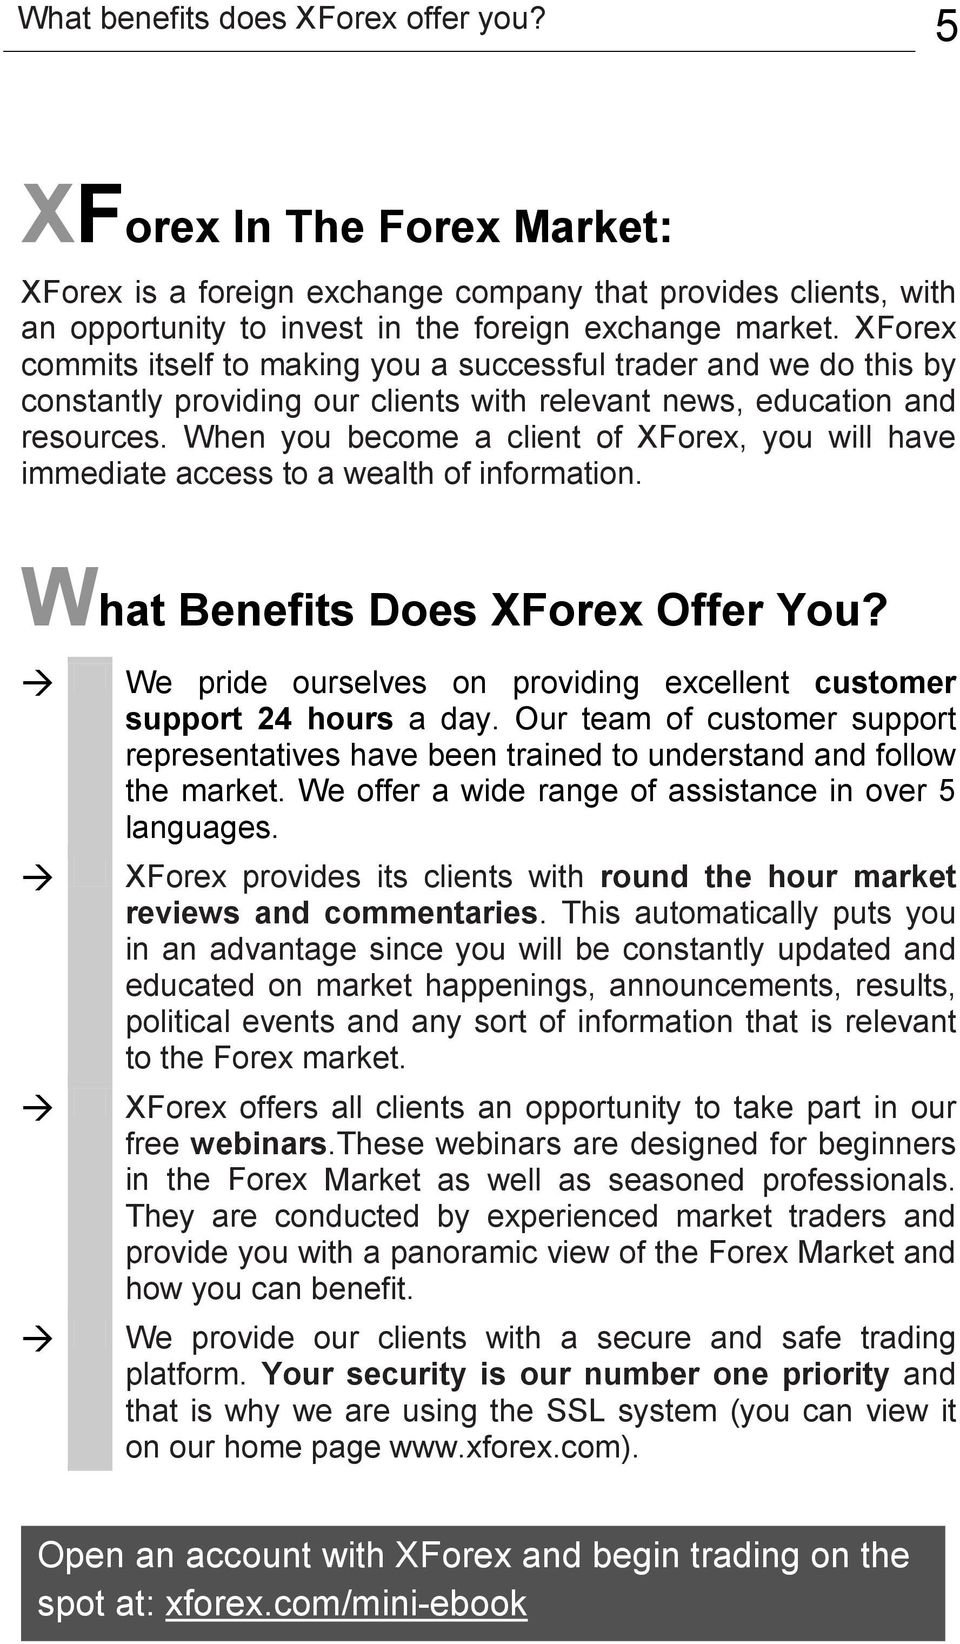 When you become a client of XForex, you will have immediate access to a wealth of information. What Benefits Does XForex Offer You?